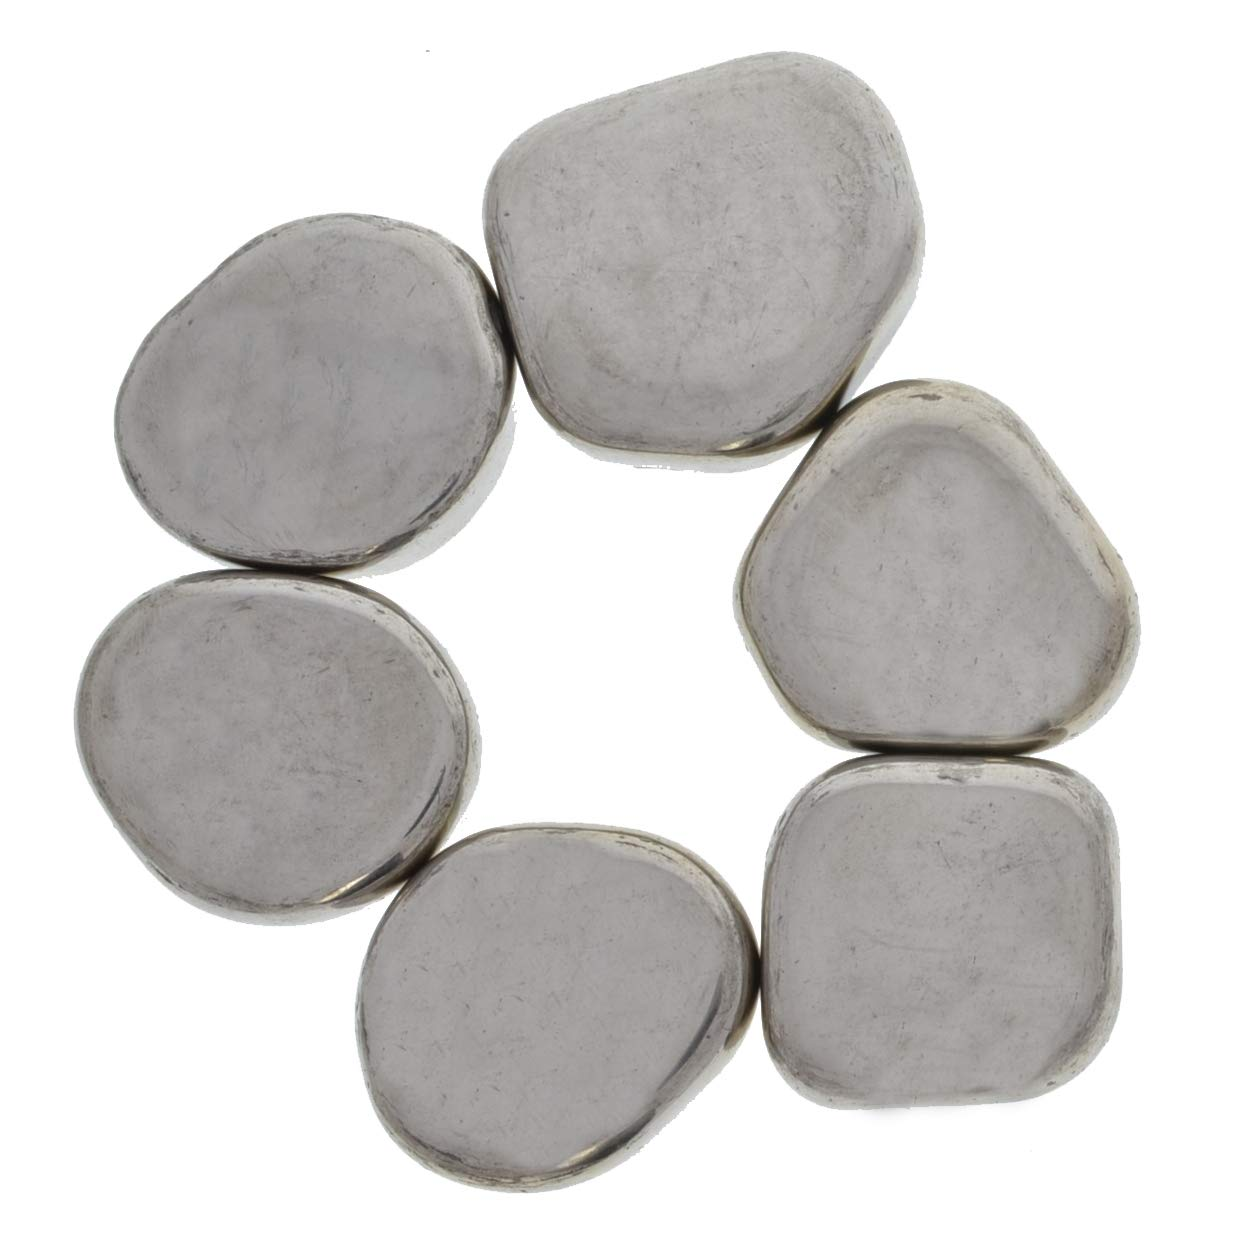 Hypnotic Gems: 18 lbs Large Silver Magnetic Hematite Asteroid Magnet Stones (90-105 pcs avg) - Bulk Magnets for Art, Crafts, Fidget Toys, Sticky Stones and More!